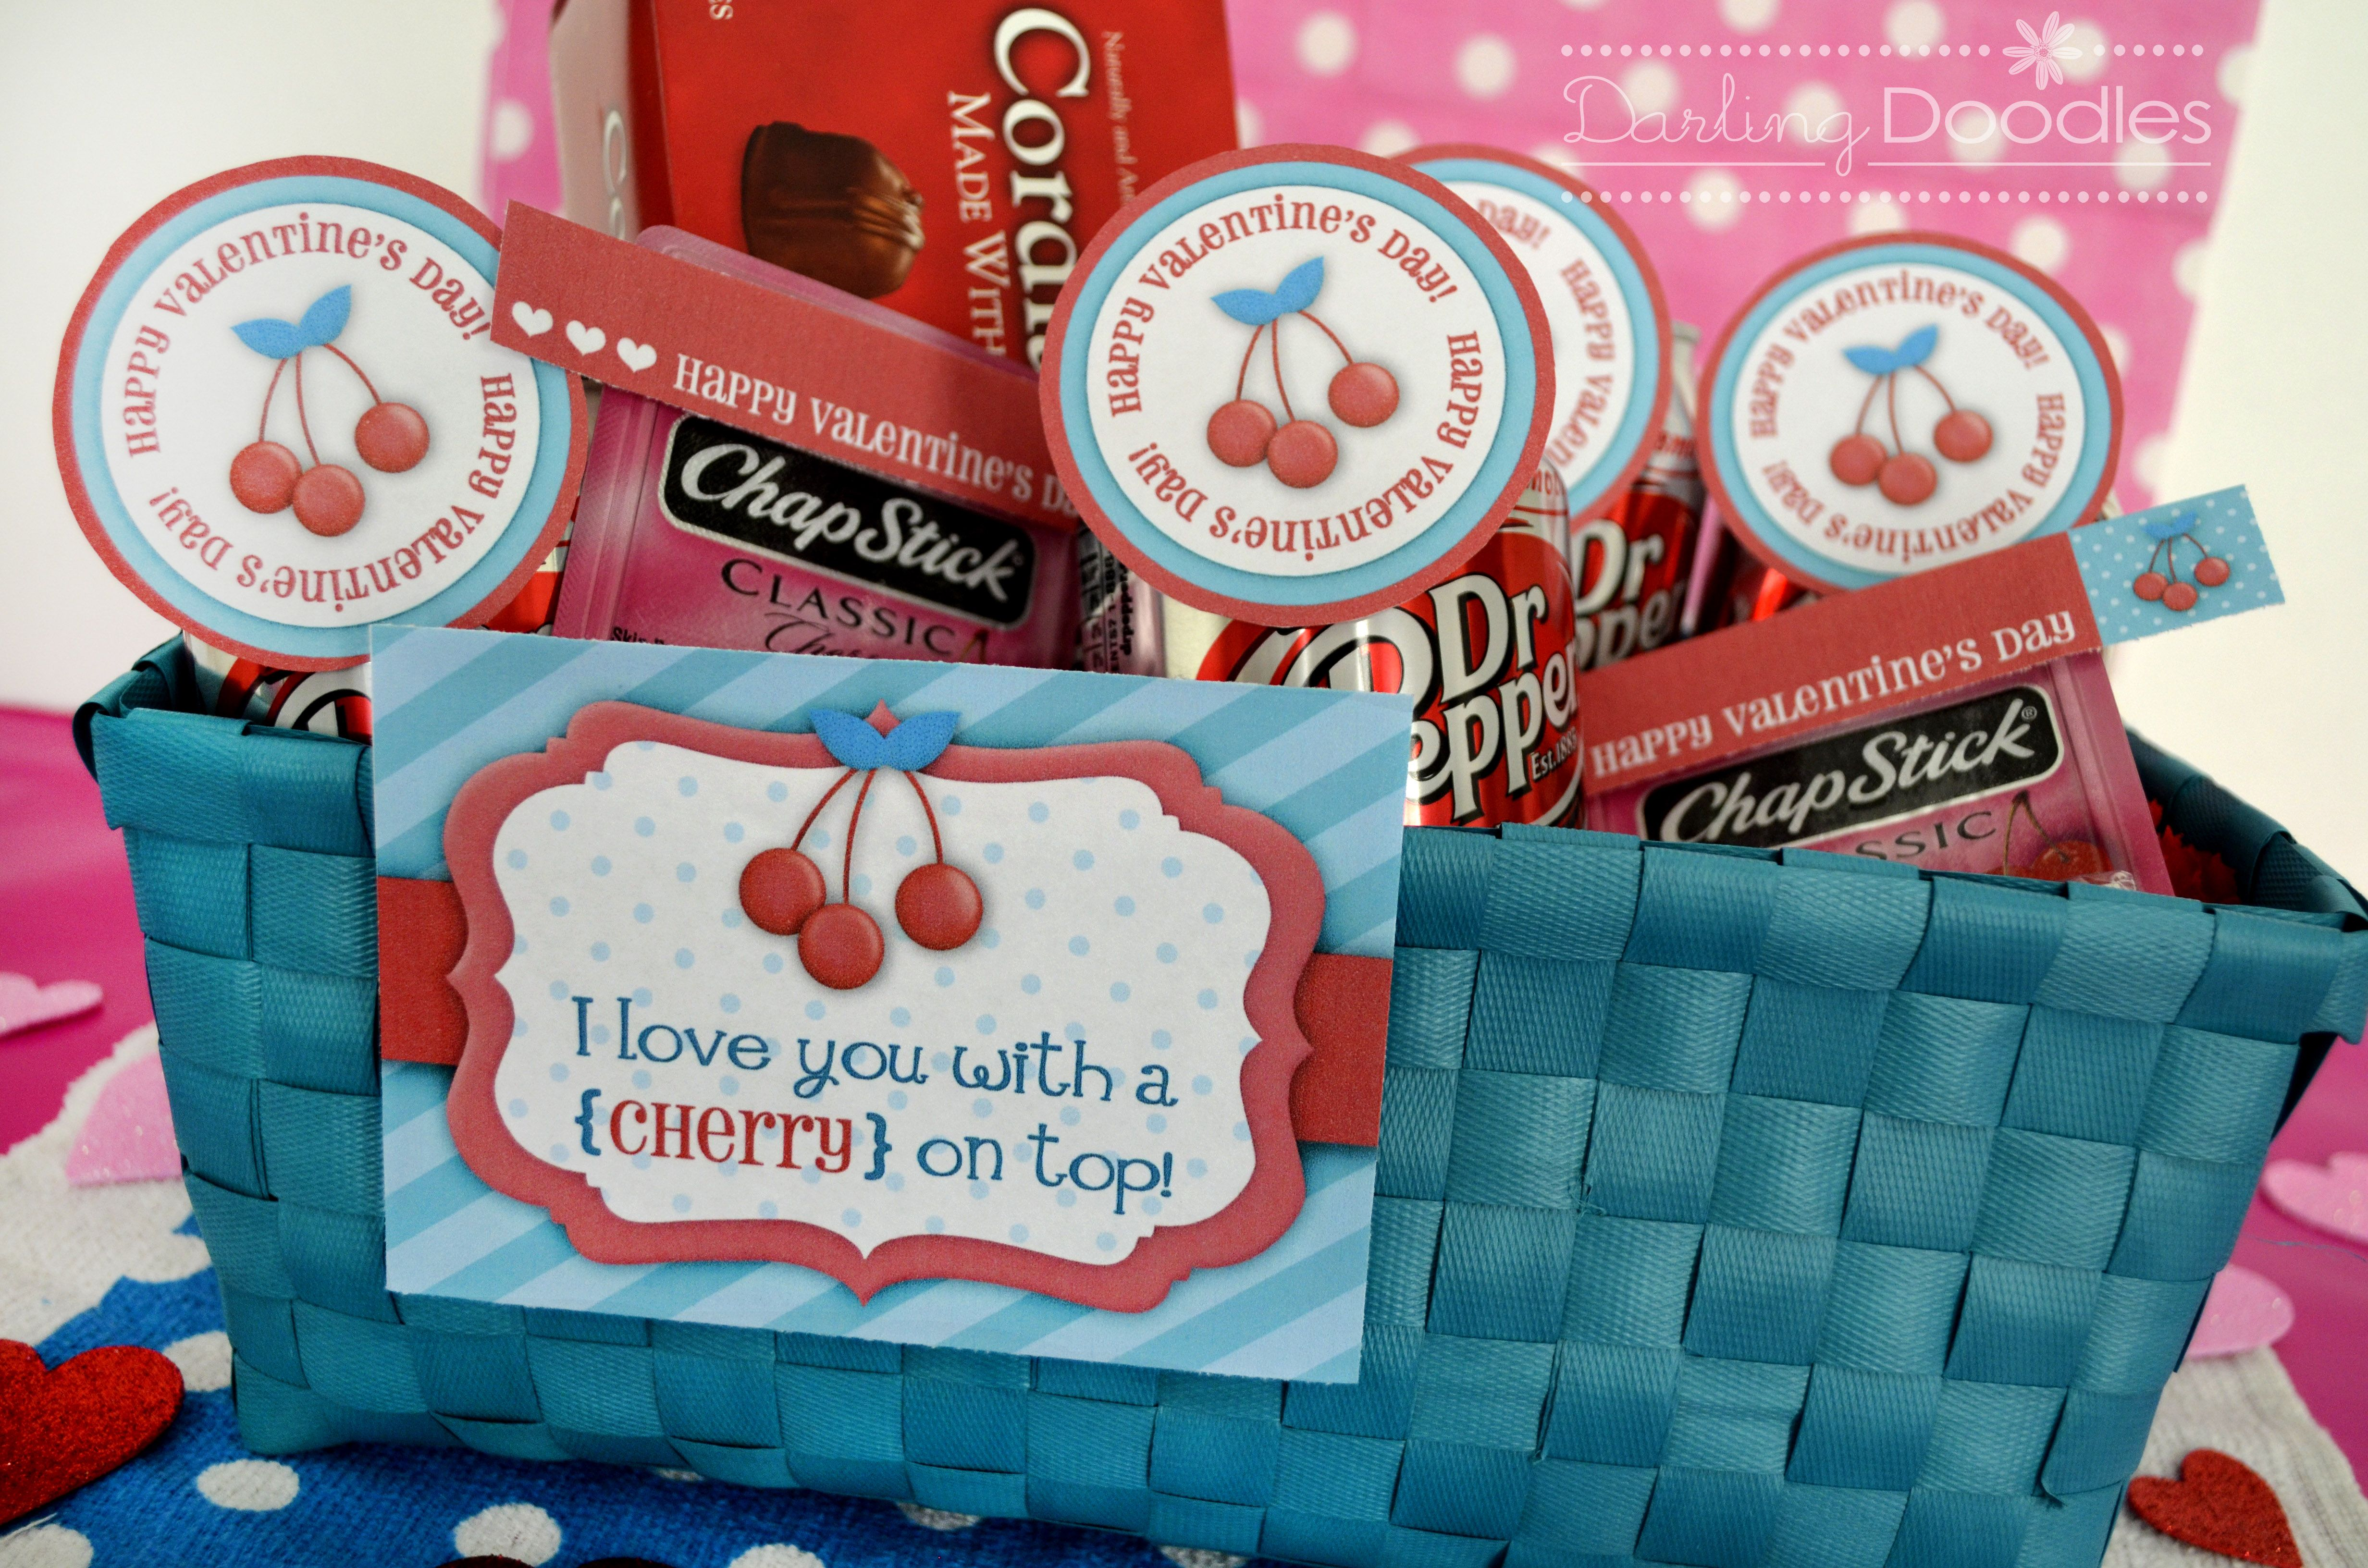 Free printable cherry gift tags from darling doodles valentine free printable cherry gift tags from darling doodles valentine love negle Image collections